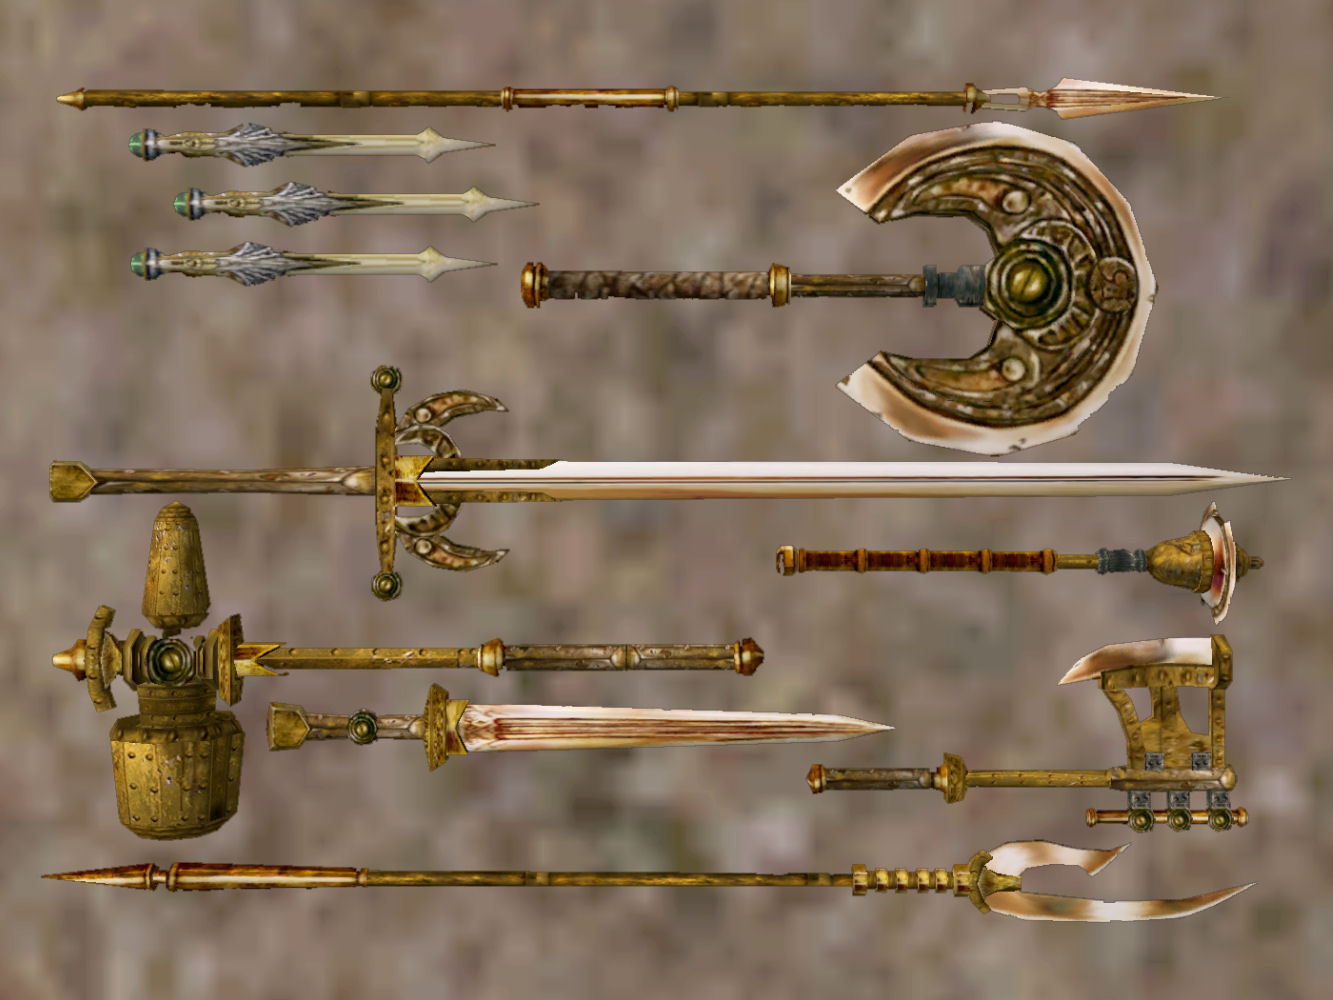 Mw dwemer weapons